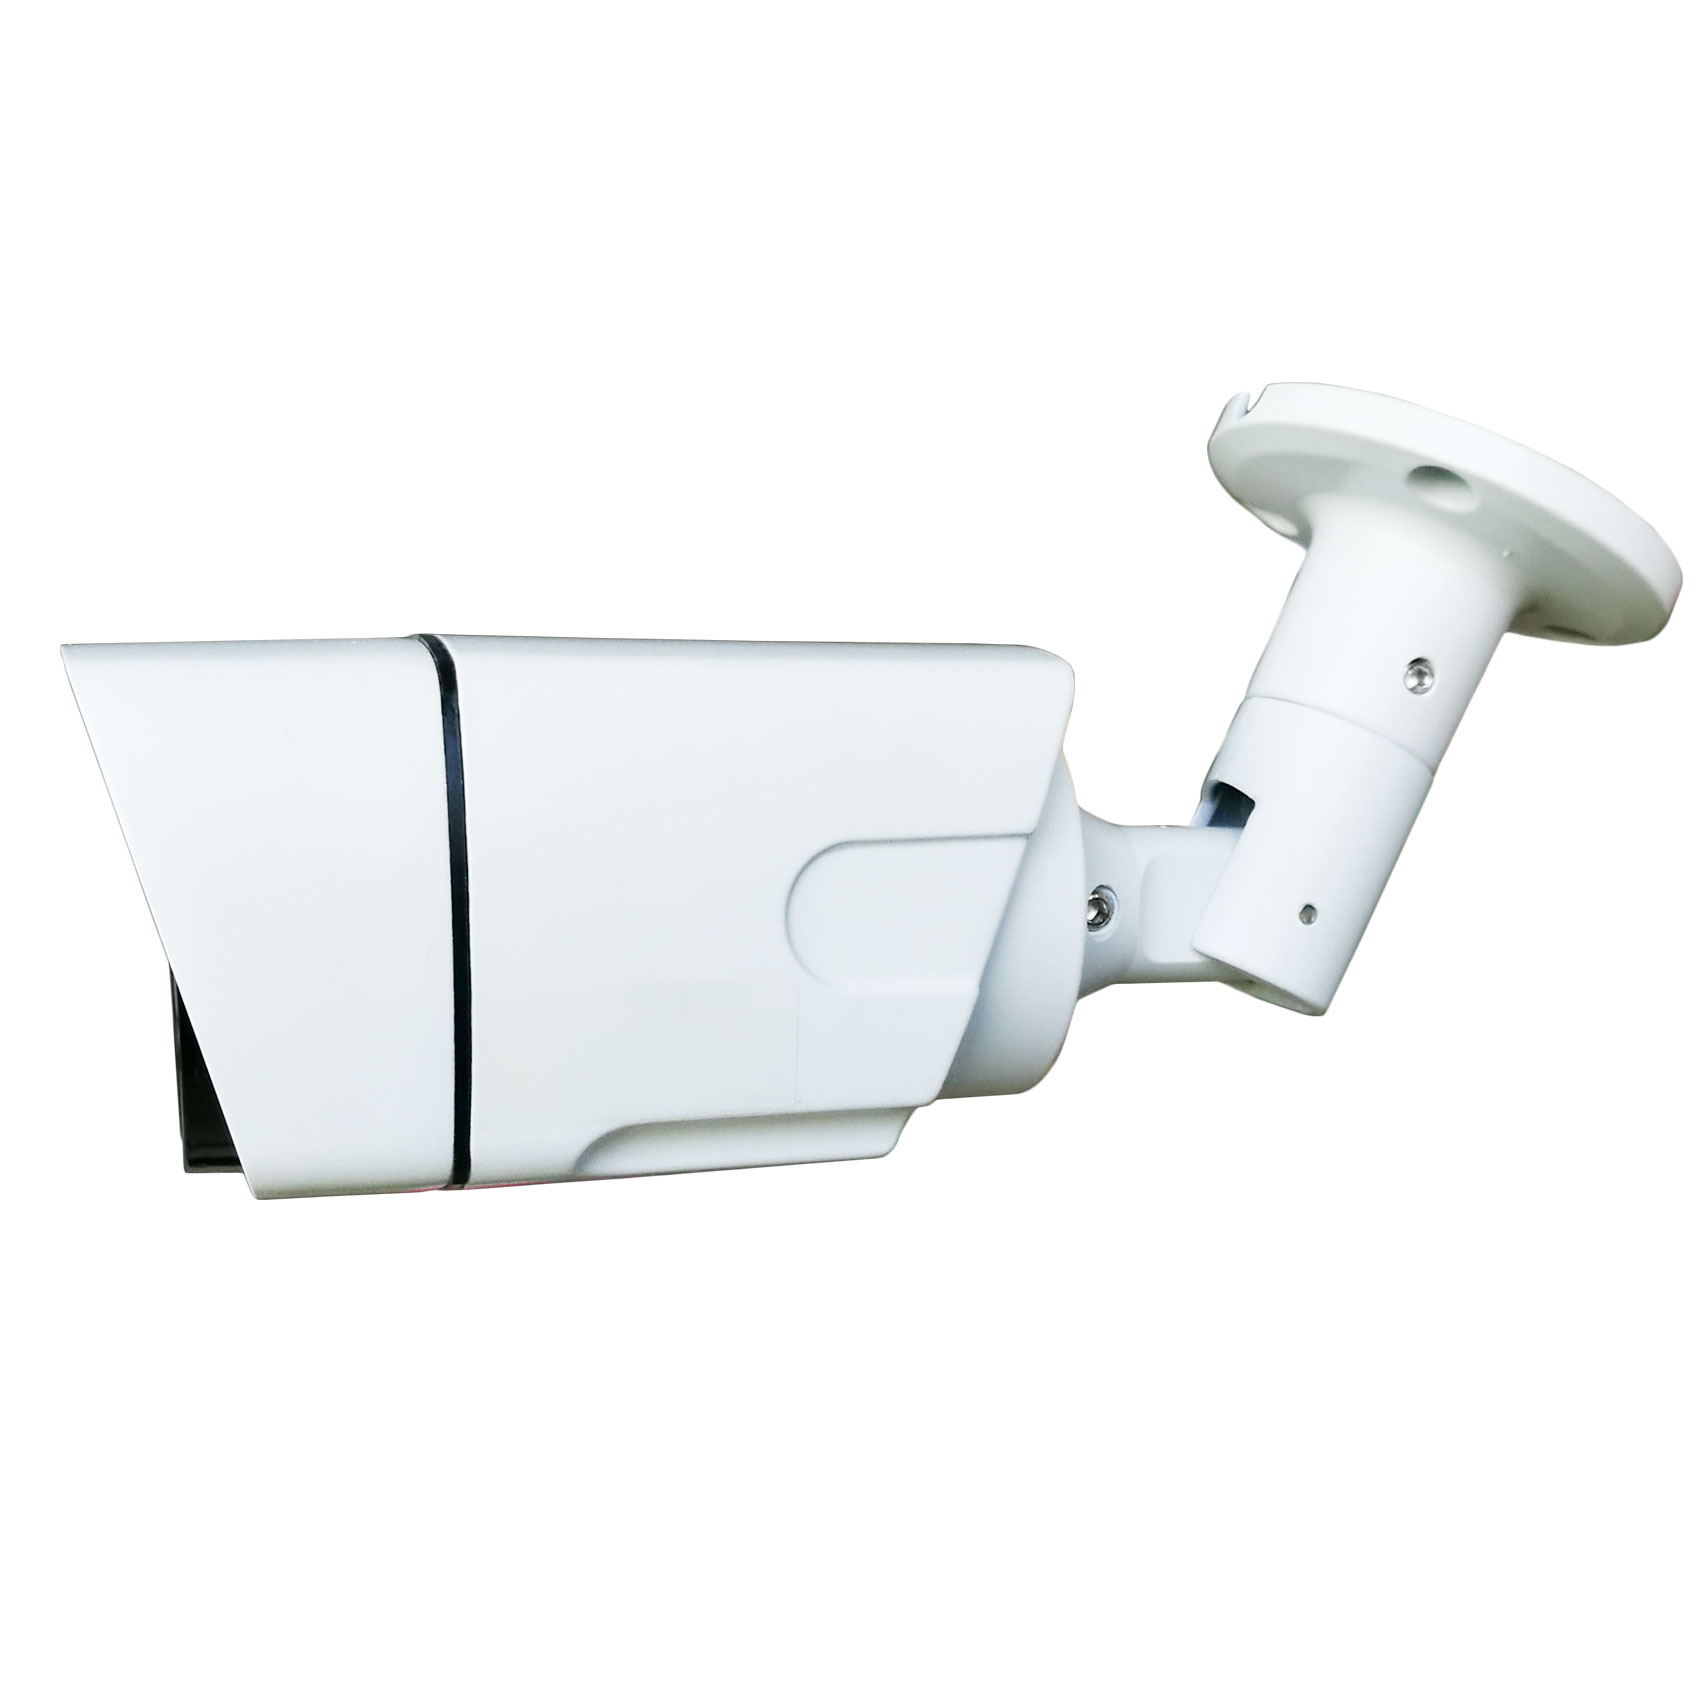 New Arrival 5mp 8ch waterproof outdoor ahd mini bullet camera CCTV System with 8ch Dvr kit with HDD